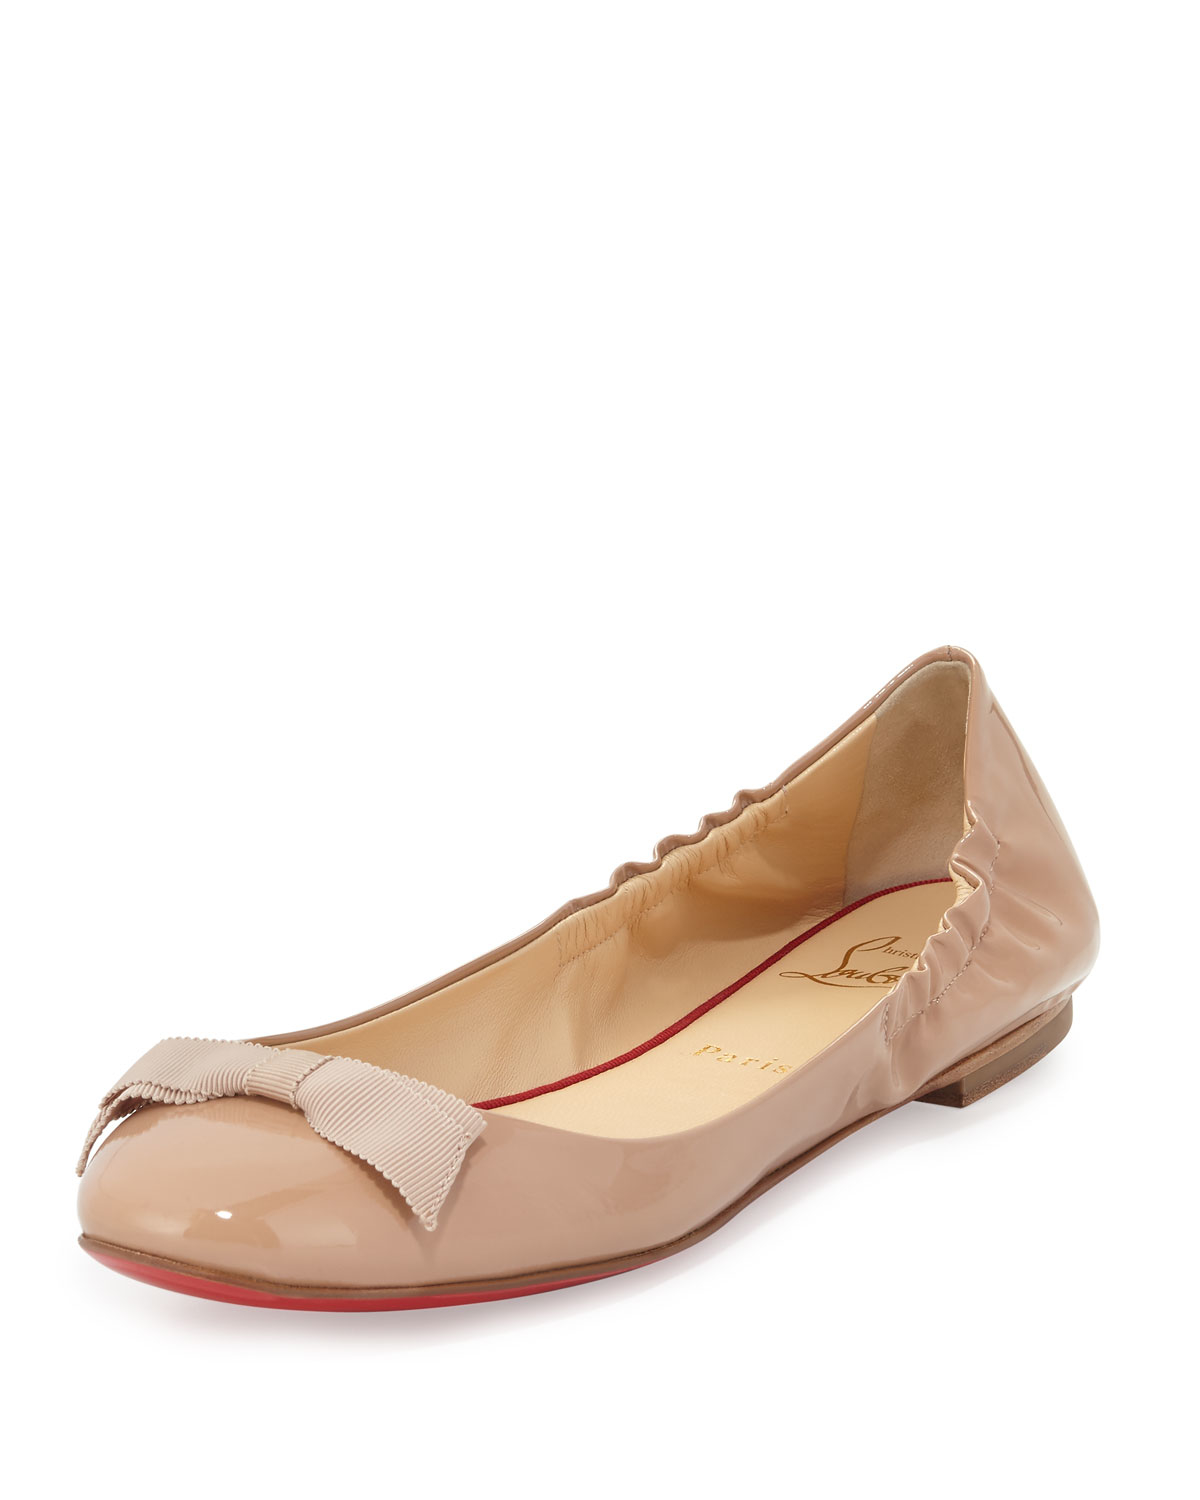 393553f828cb Lyst - Christian Louboutin Gloriana Patent-Leather Ballet Flats in ...